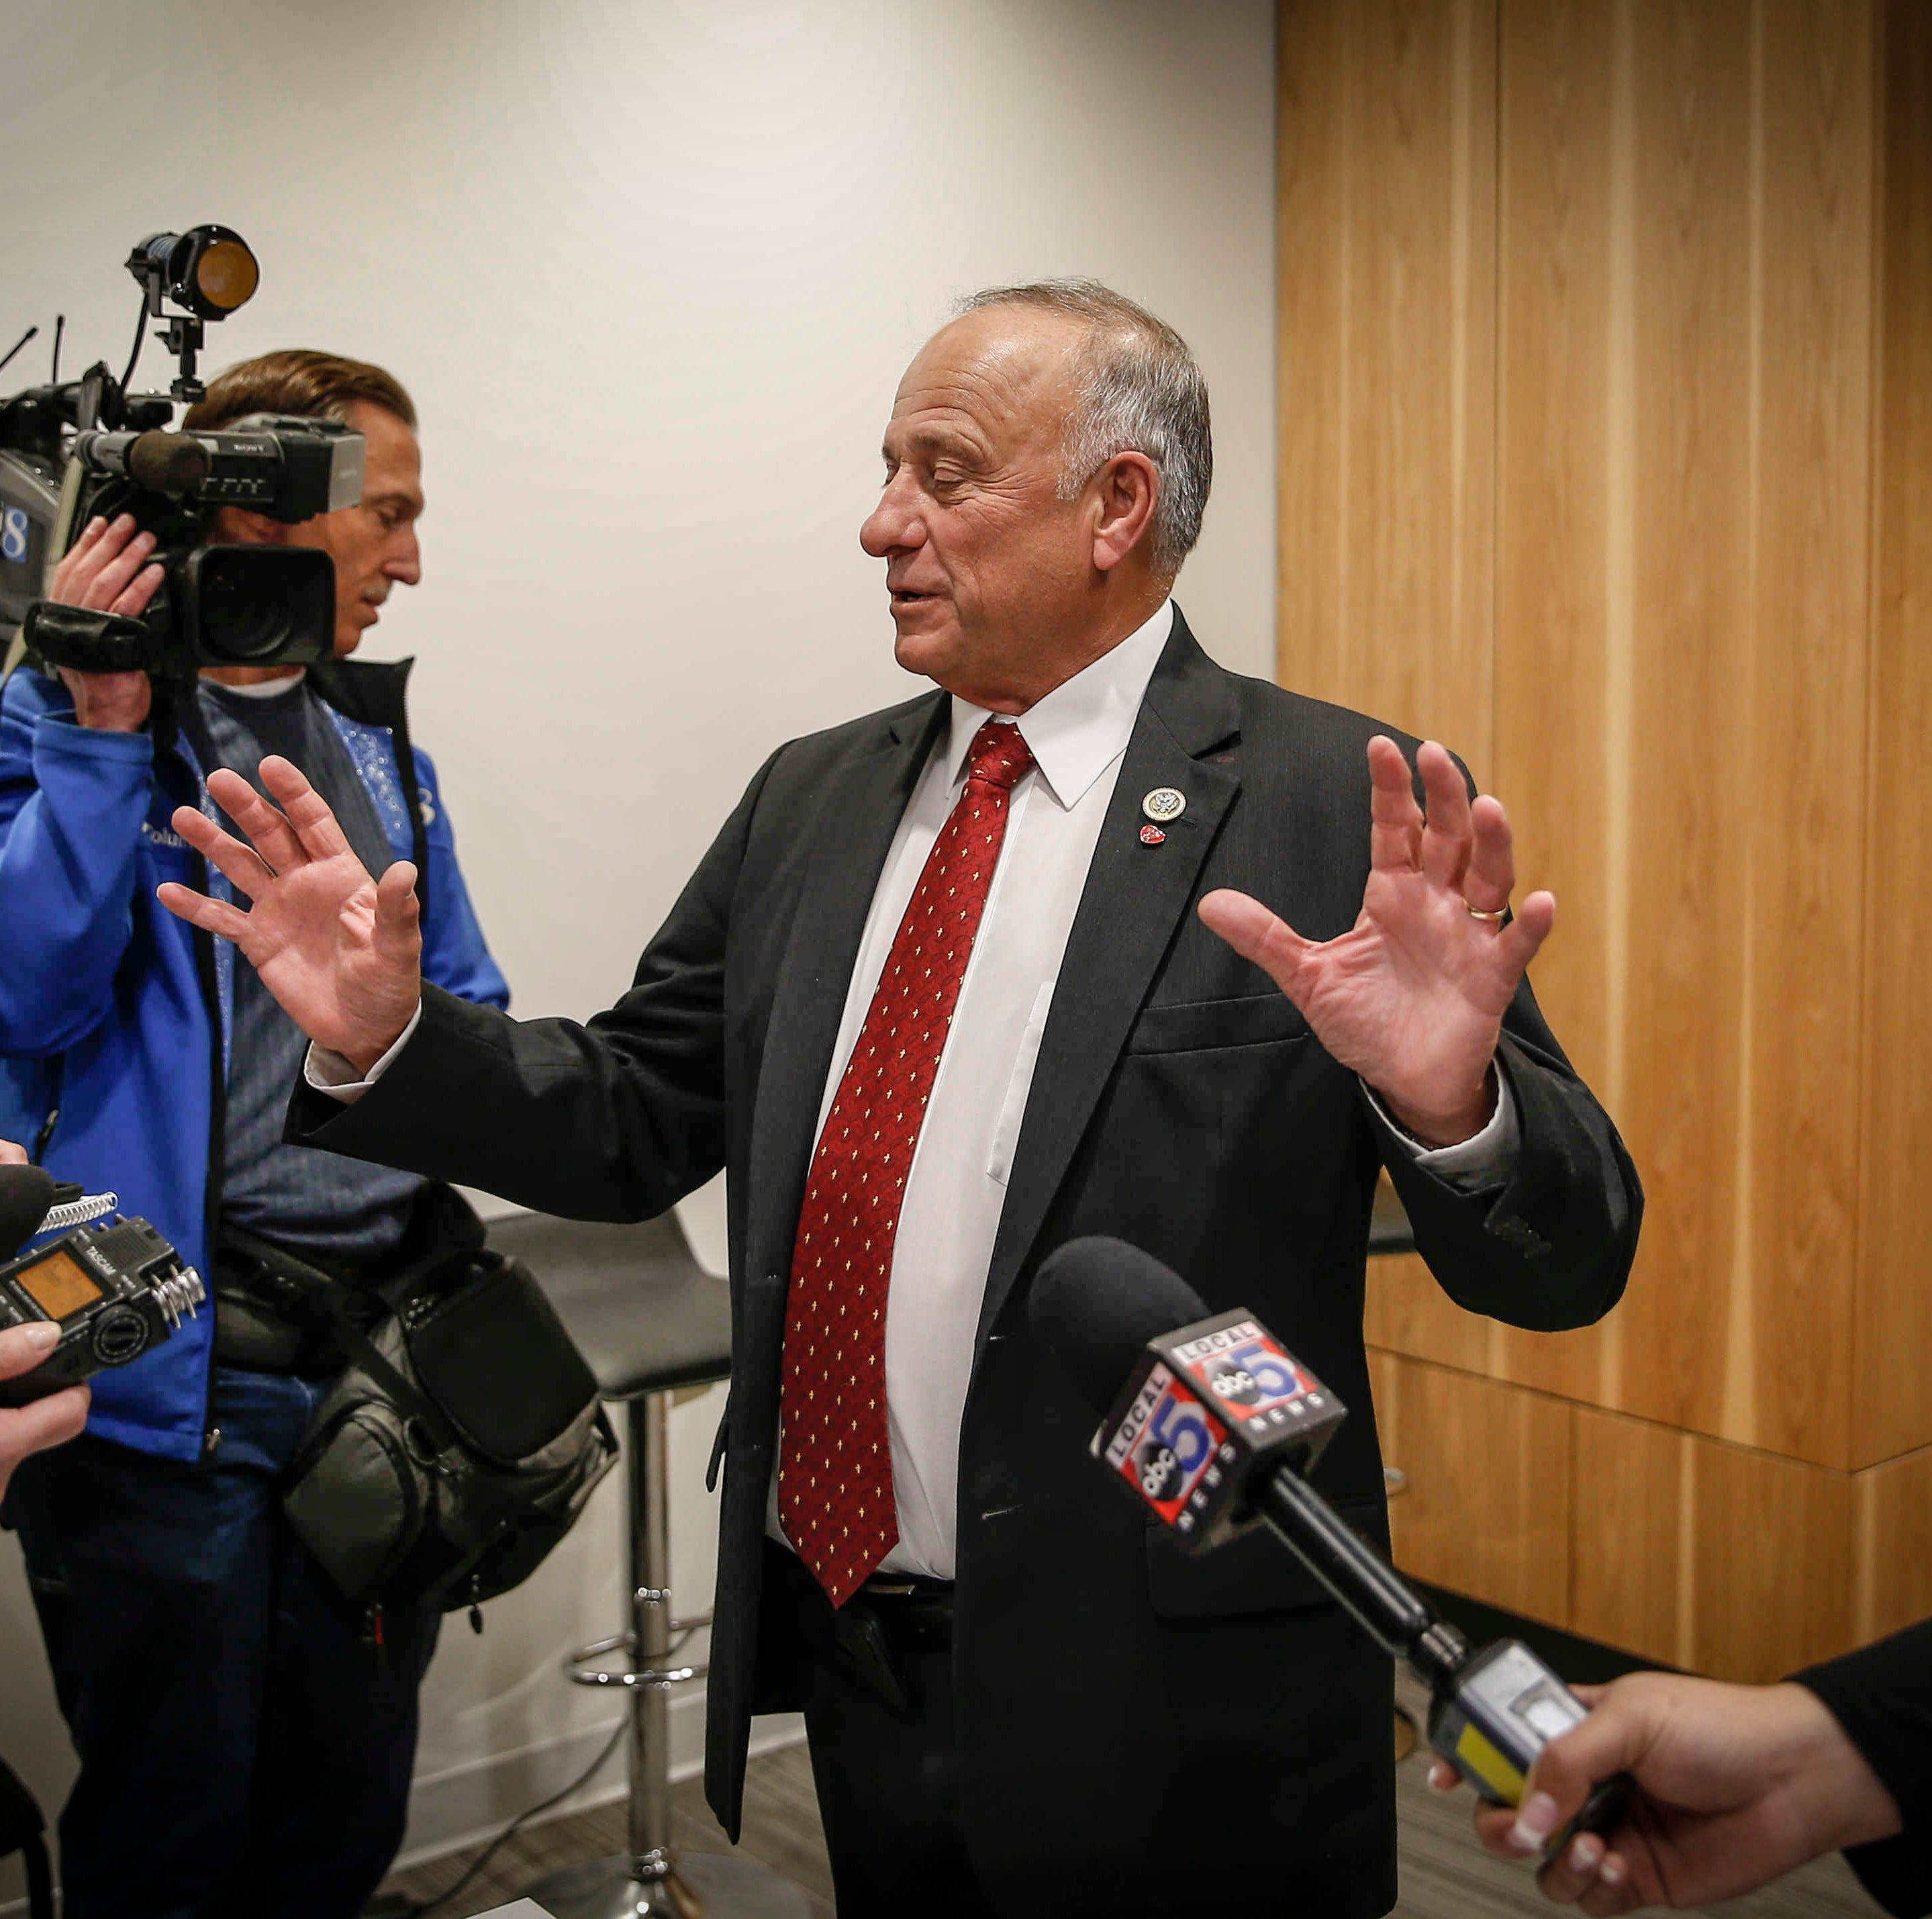 Rep. Steve King spars with conservative magazine which said he called immigrants 'dirt'